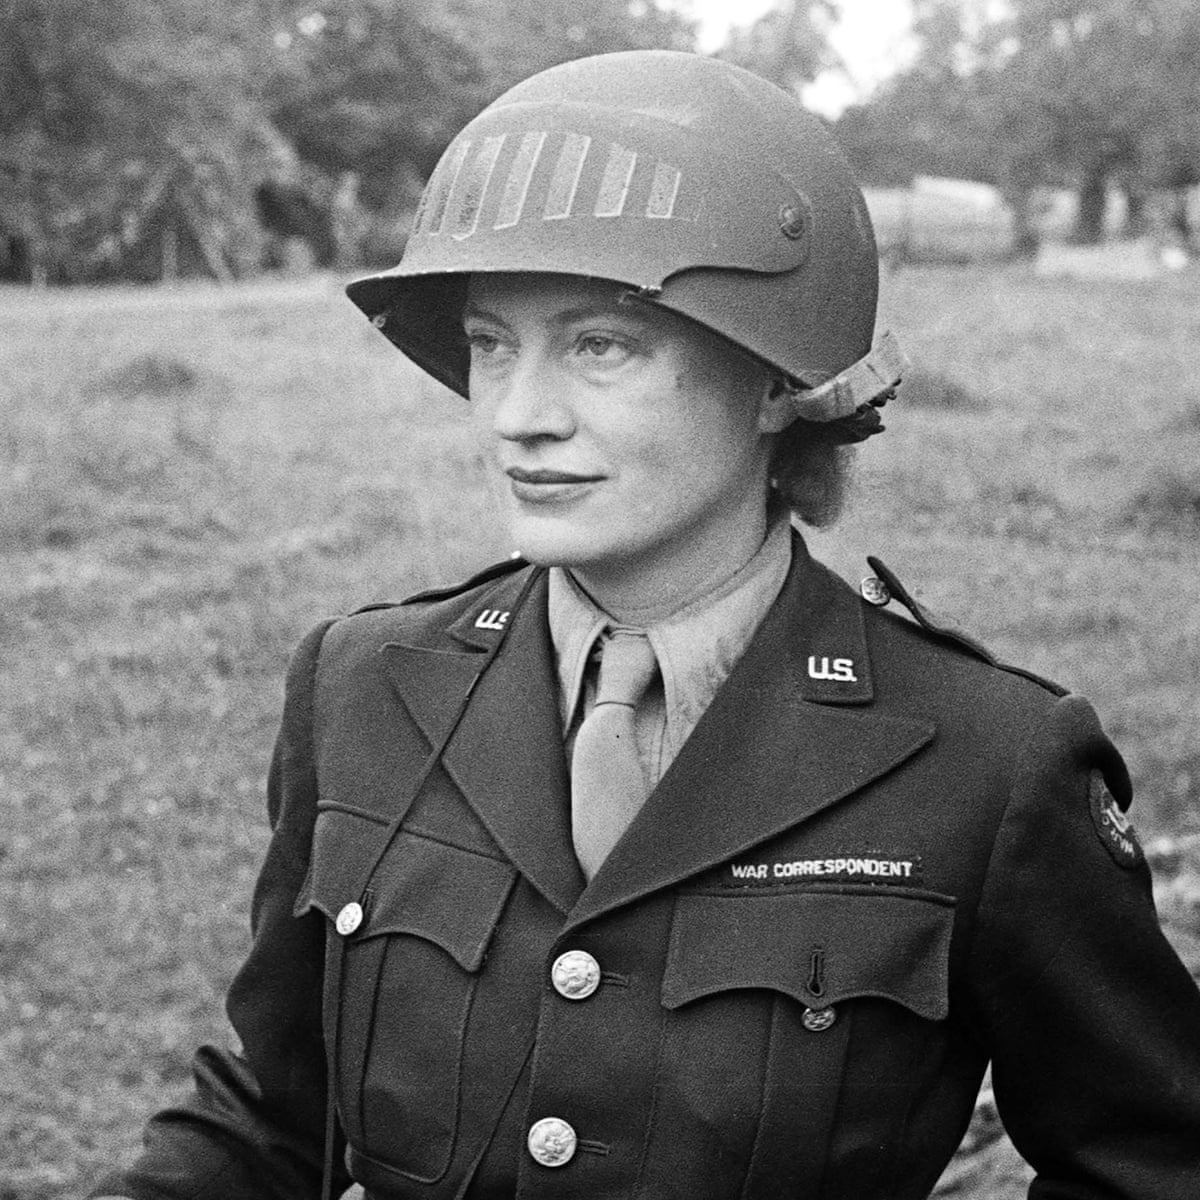 Lee Miller, US Forces War Correspondent